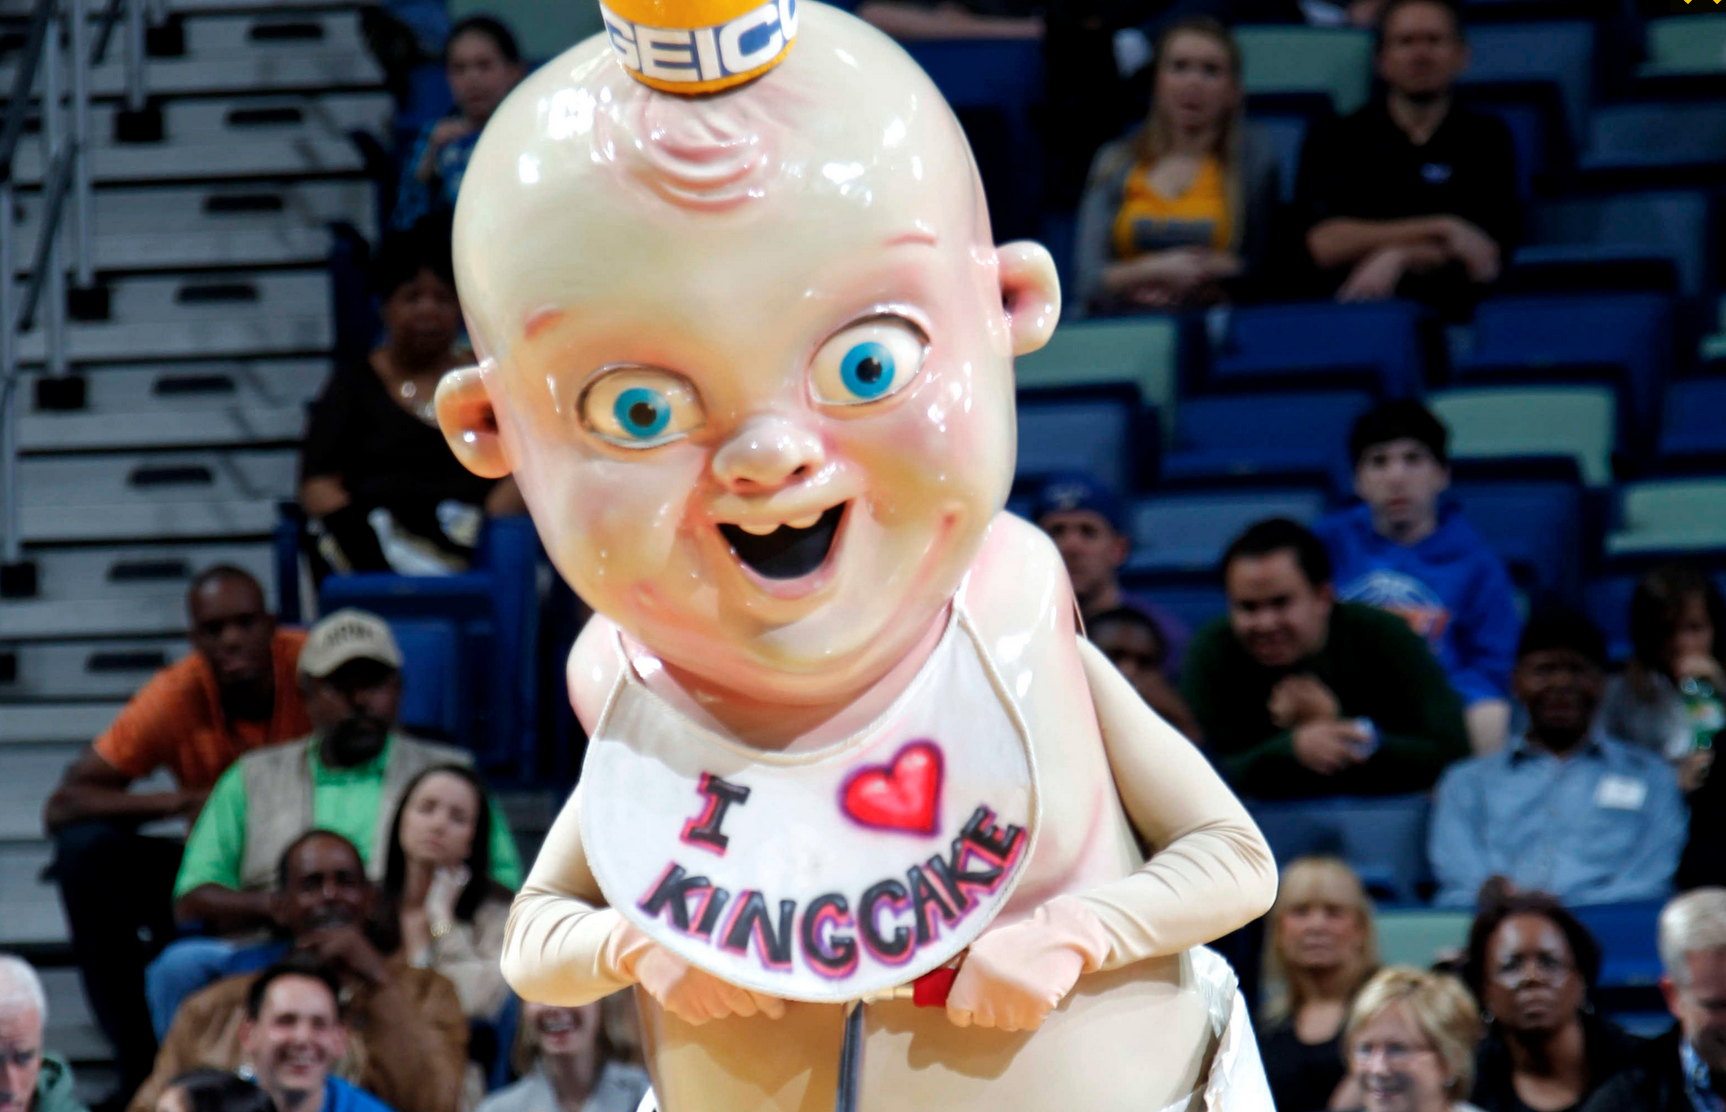 The Creepiest Mascots in Sports | The Players' Tribune